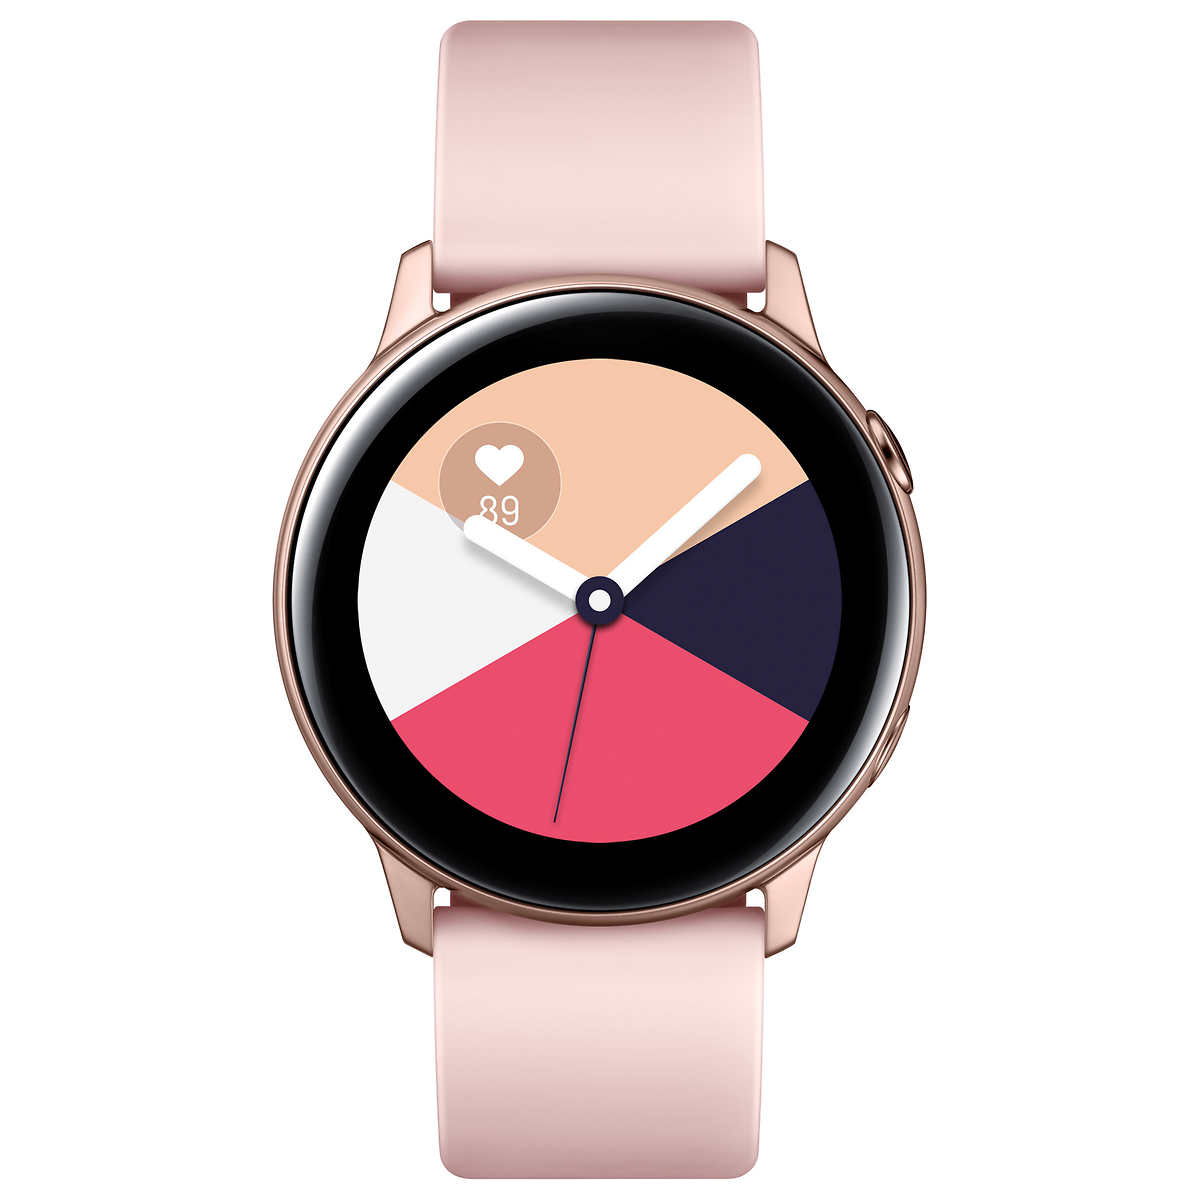 3dc04963265f01 ... Samsung Galaxy Active Smartwatch 40mm - Rose Gold. 1 1